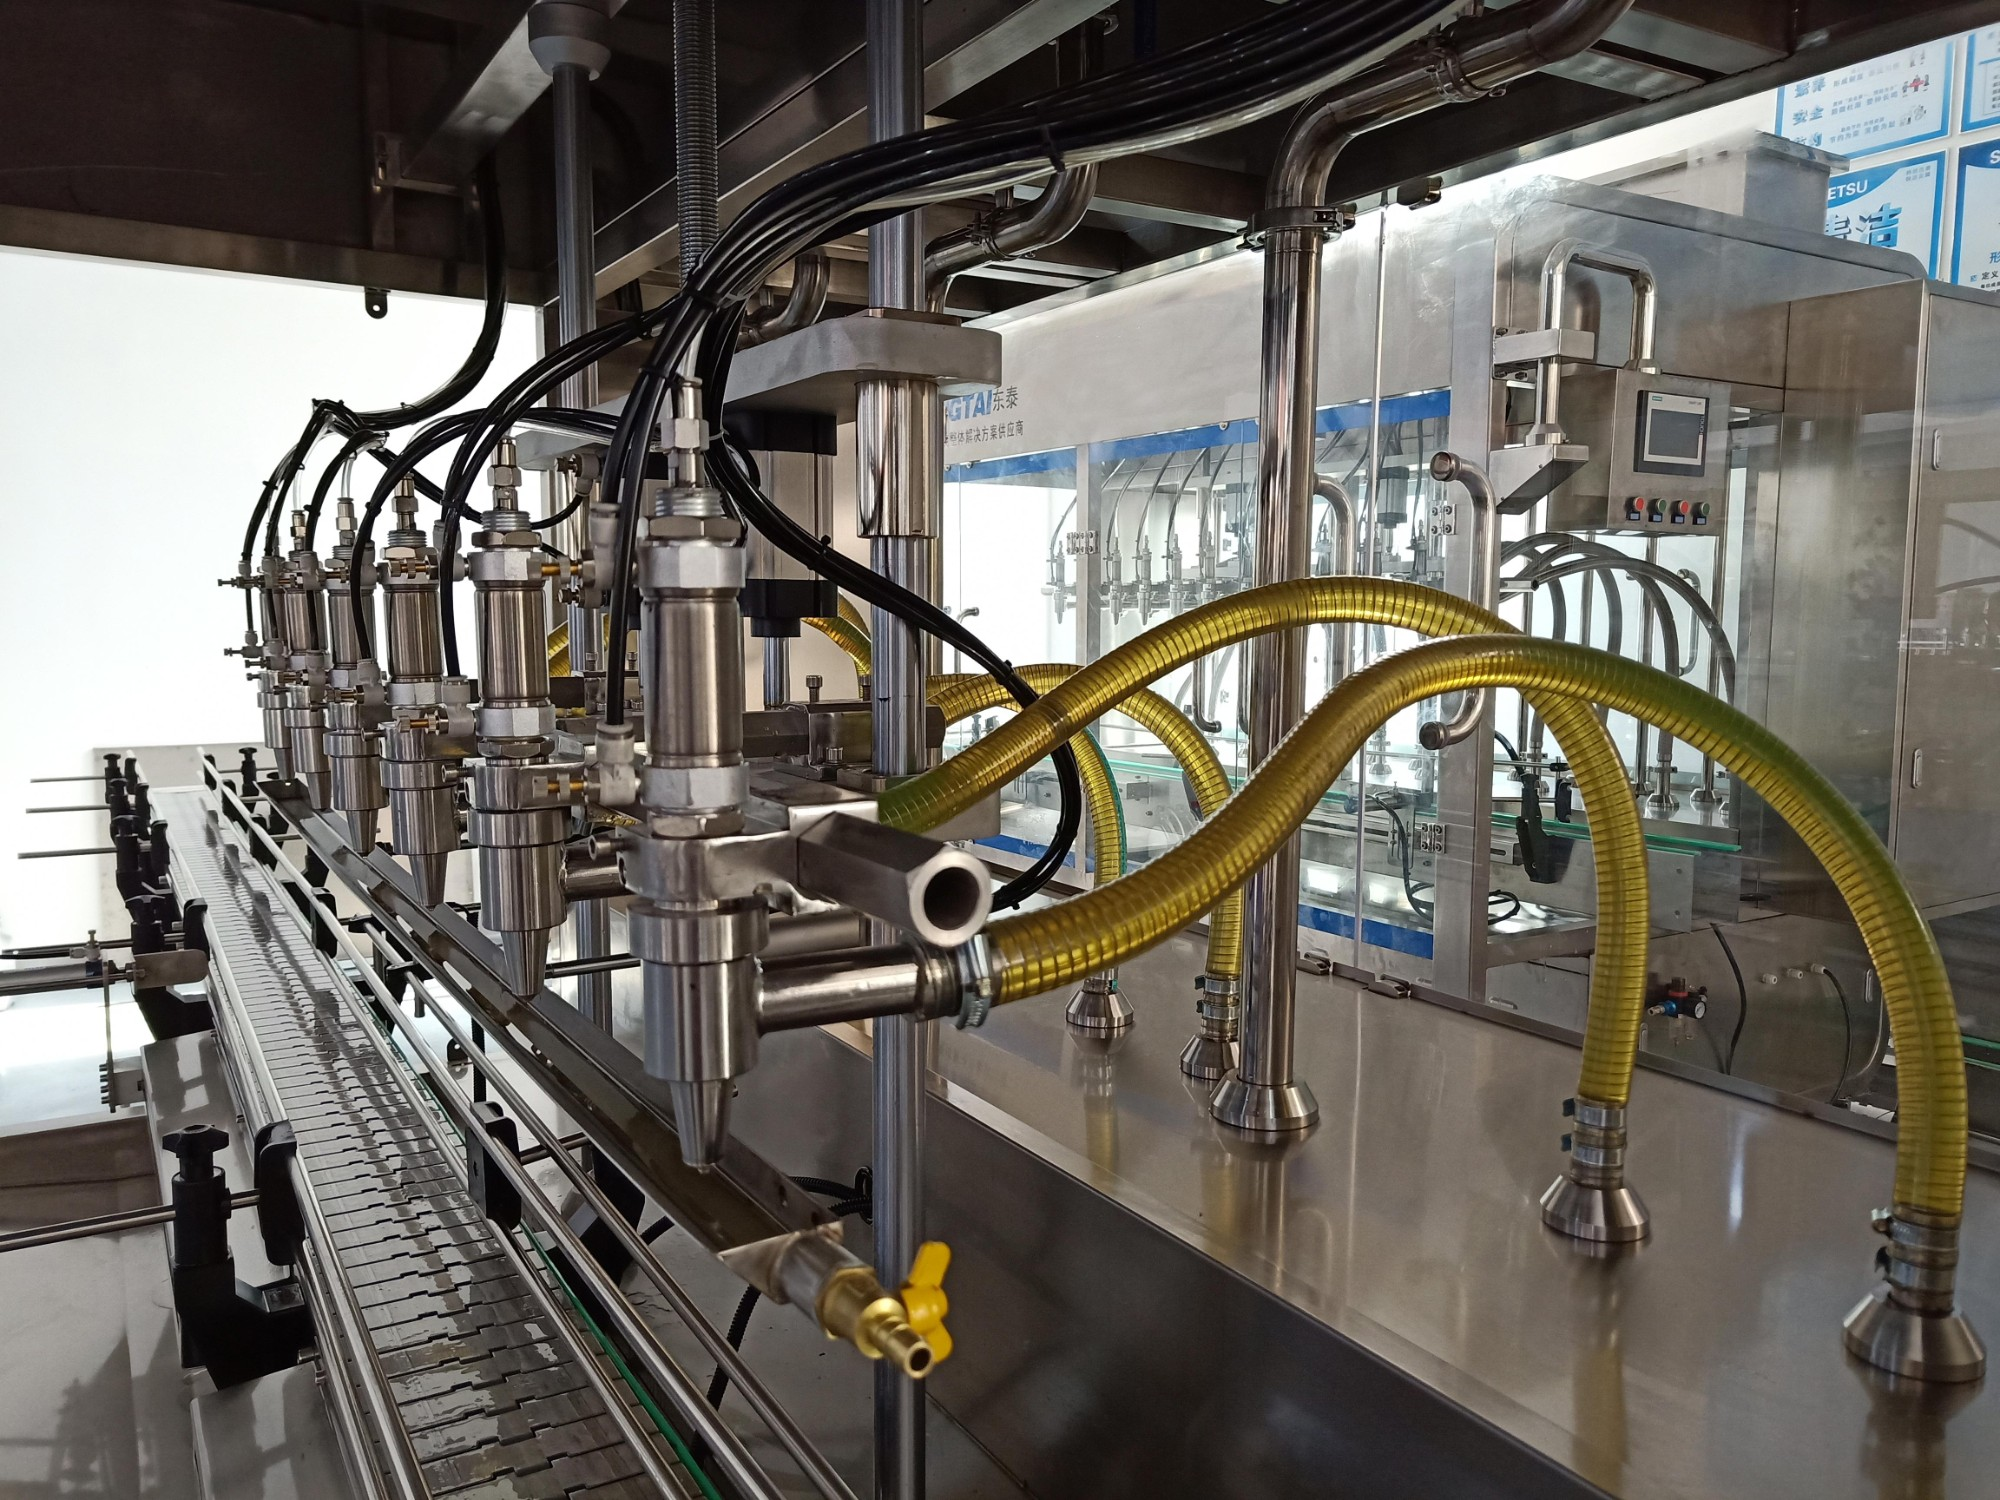 Lube oil filling capping labeling machine engine oil filling machine palm oil filling and sealing machine olive oil bottle filling machine Manufacturers, Lube oil filling capping labeling machine engine oil filling machine palm oil filling and sealing machine olive oil bottle filling machine Factory, Supply Lube oil filling capping labeling machine engine oil filling machine palm oil filling and sealing machine olive oil bottle filling machine